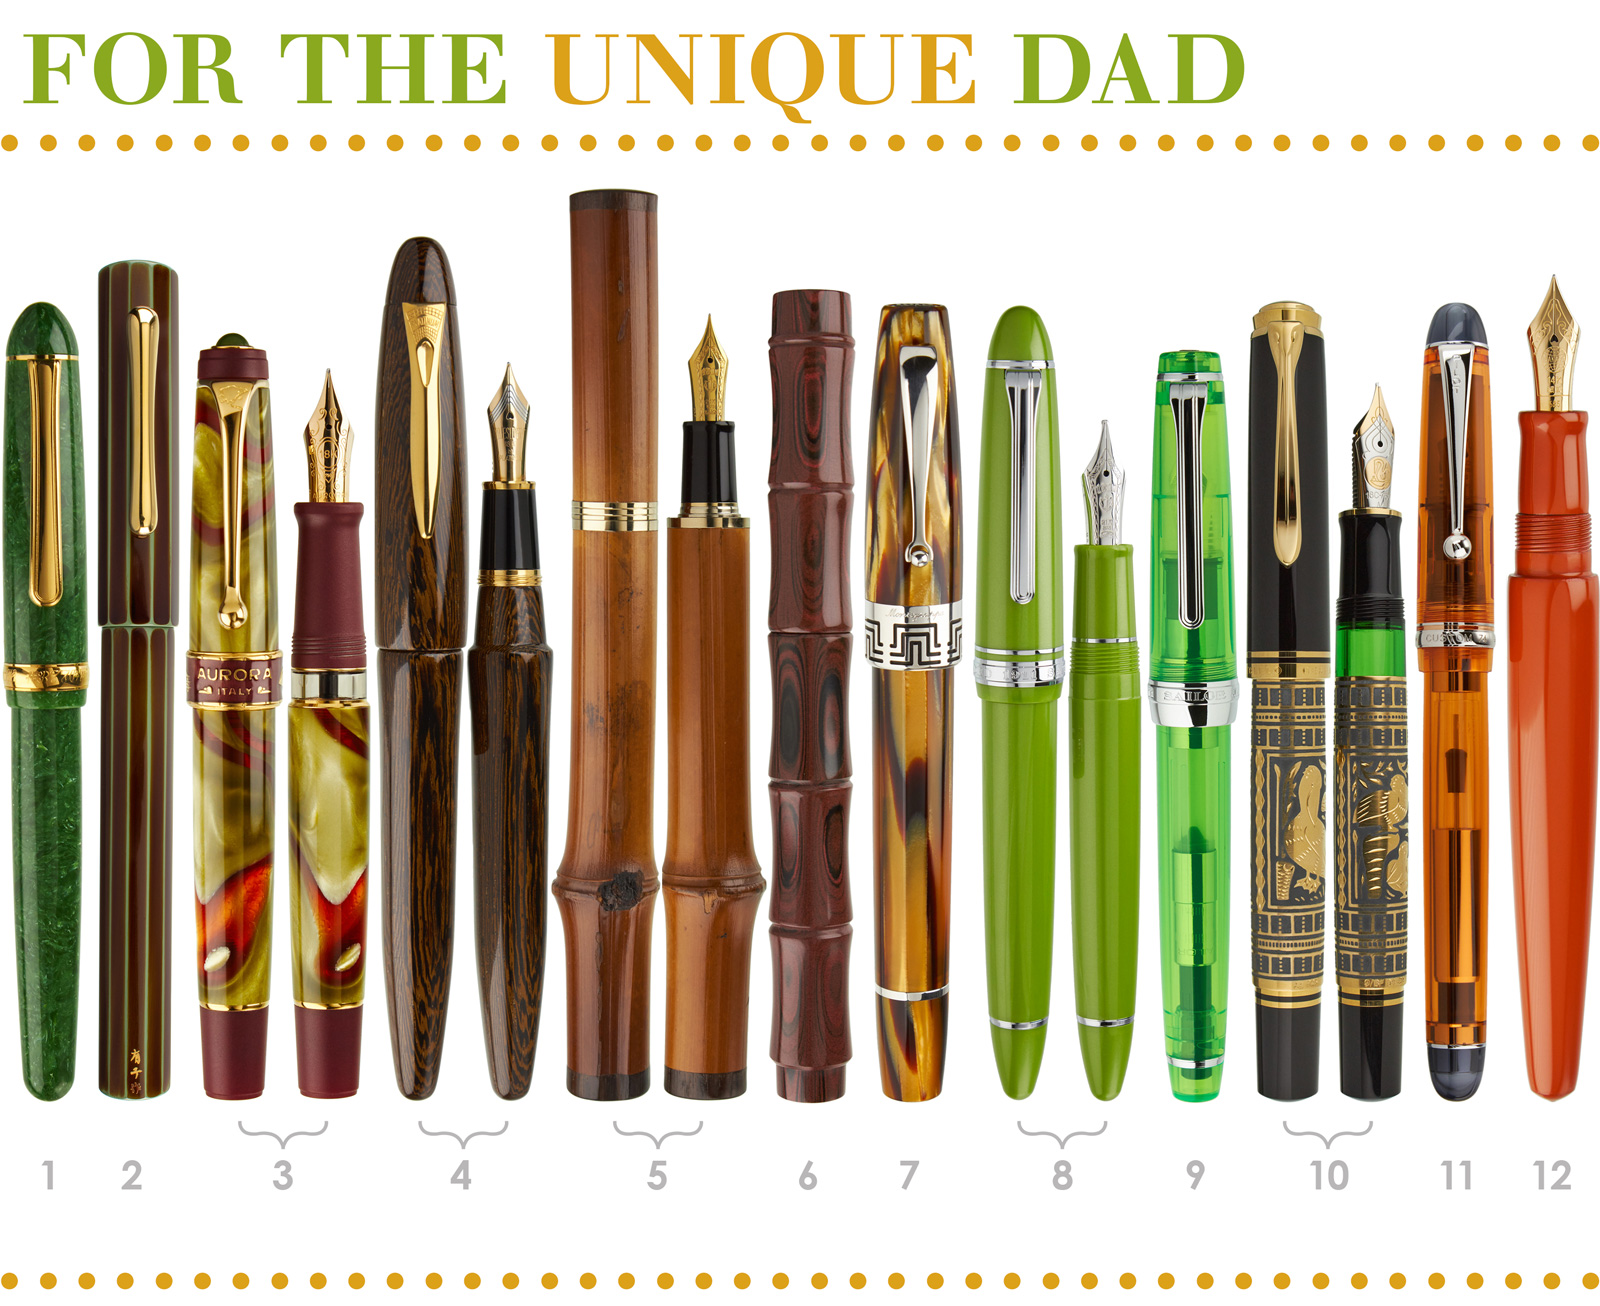 Pen Collection 4: For the Unique Dad